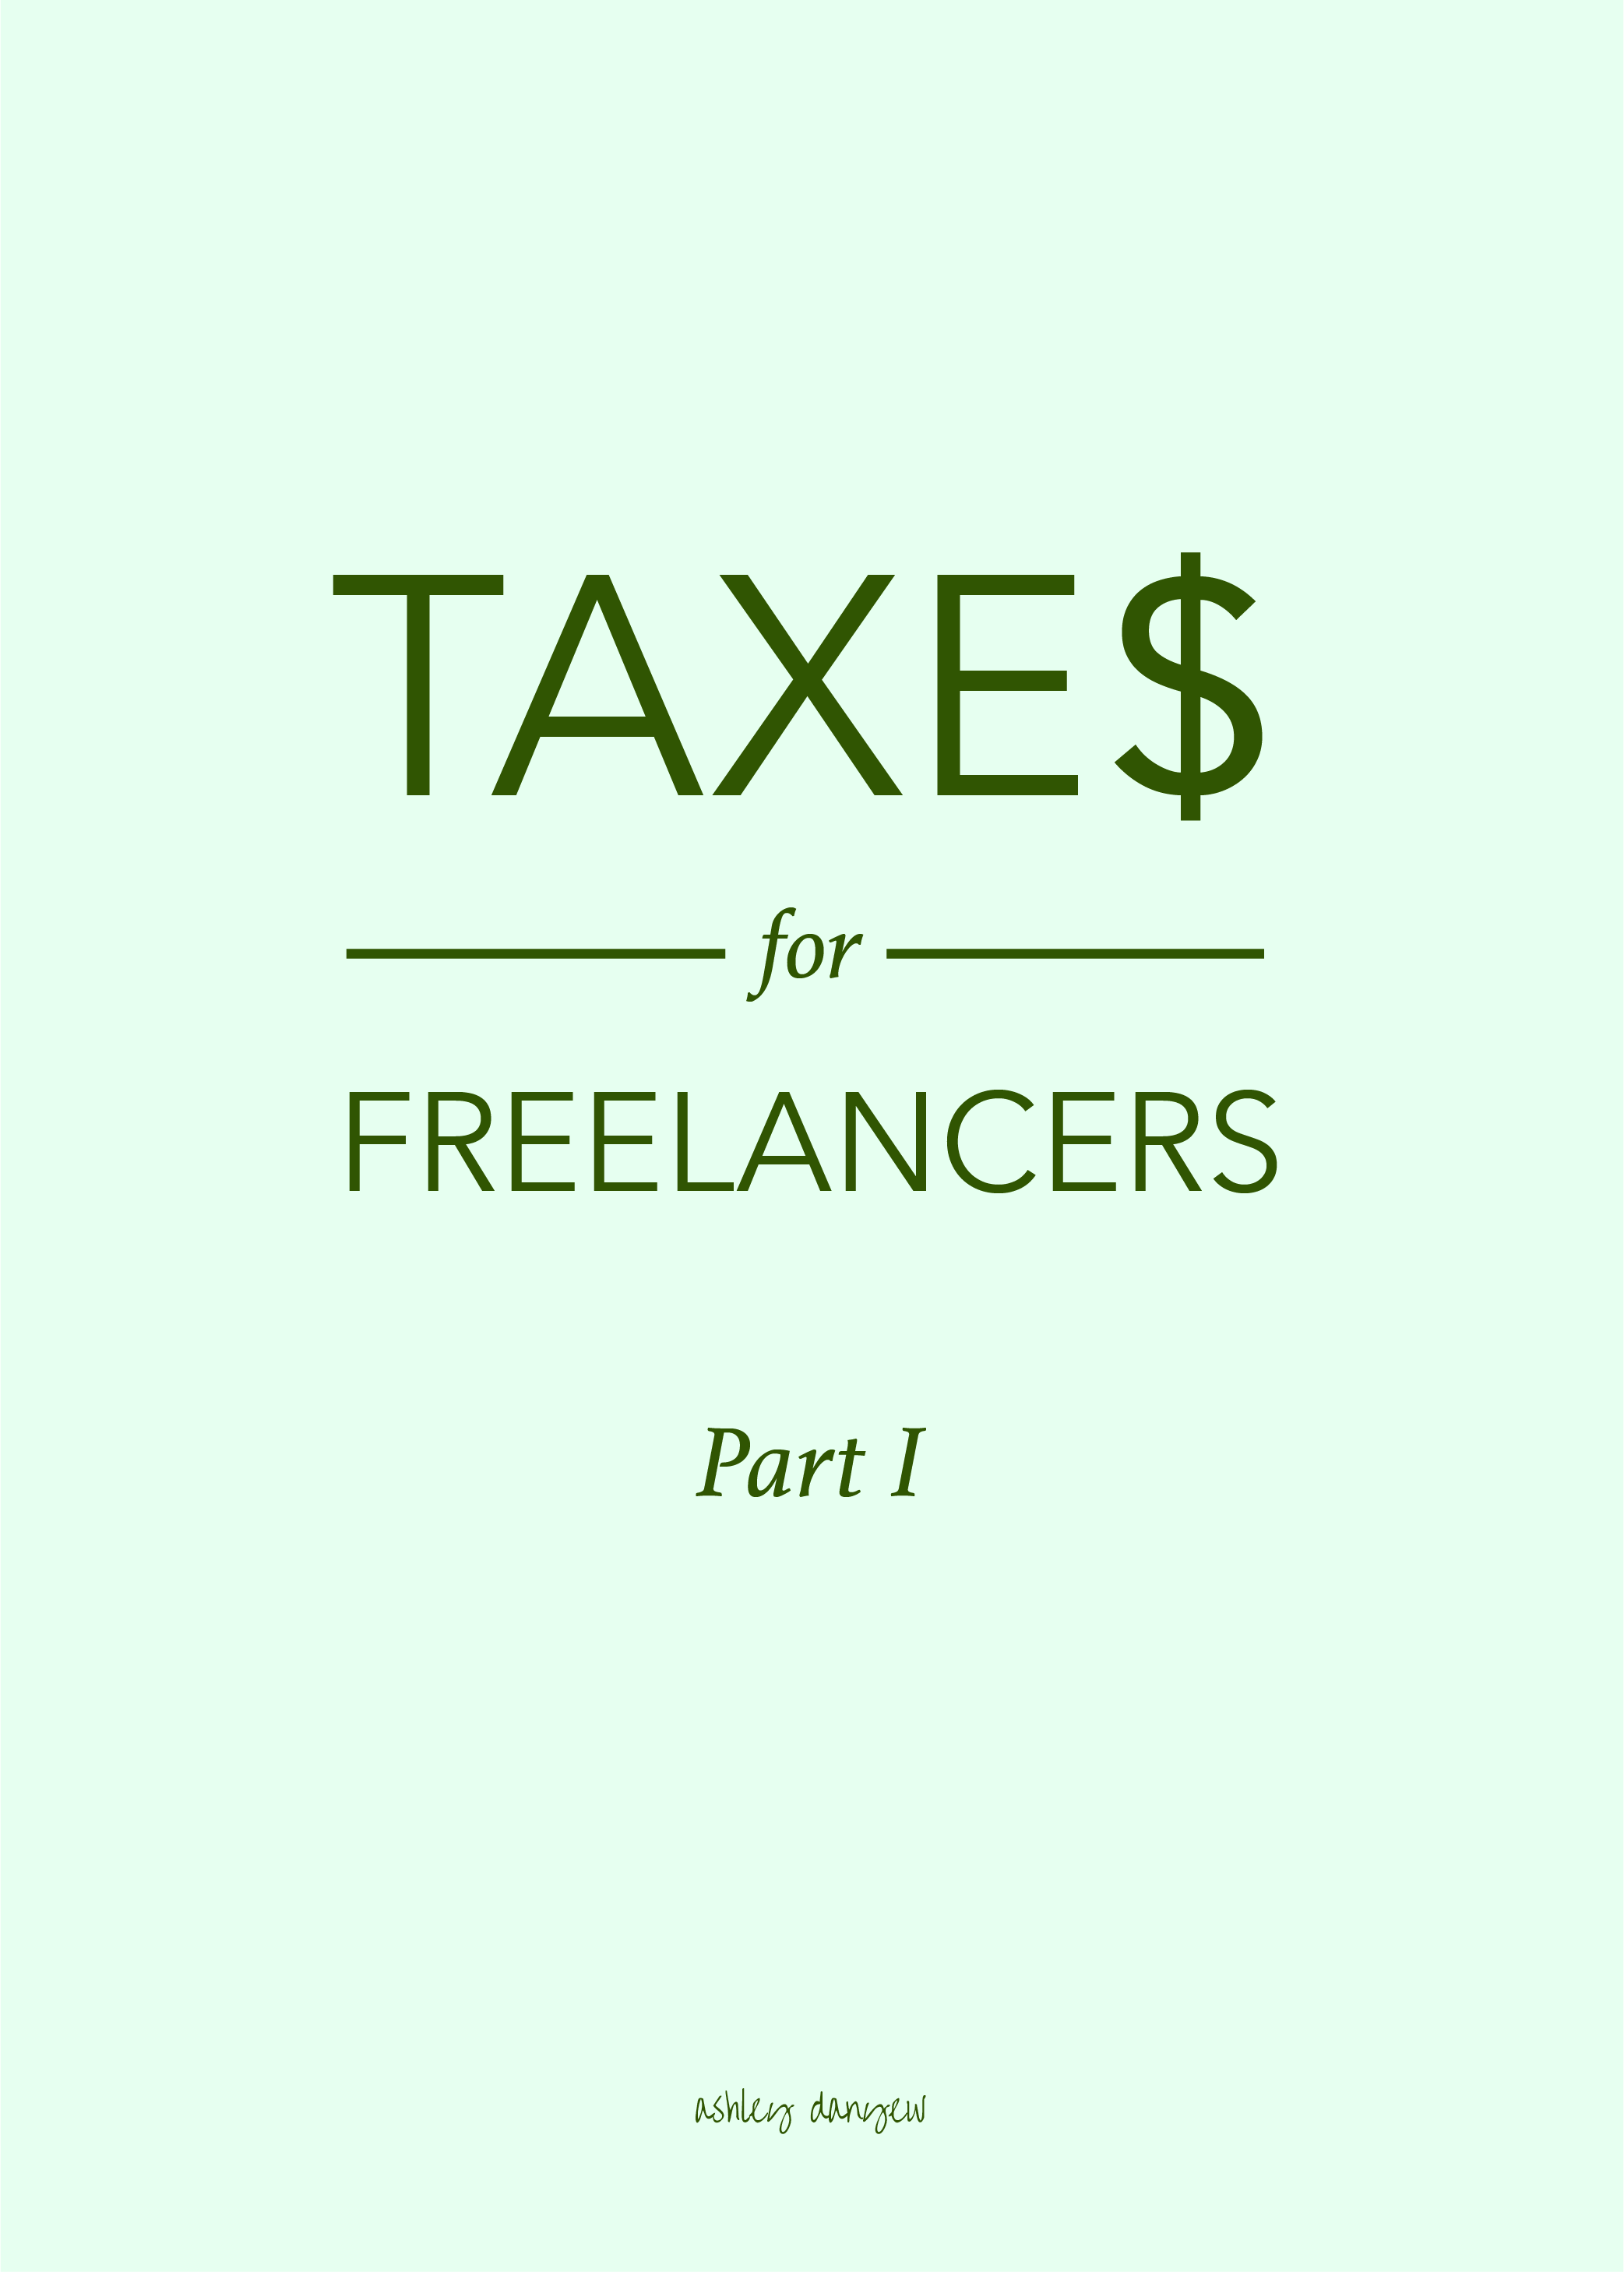 Taxes for Freelancers_I.png